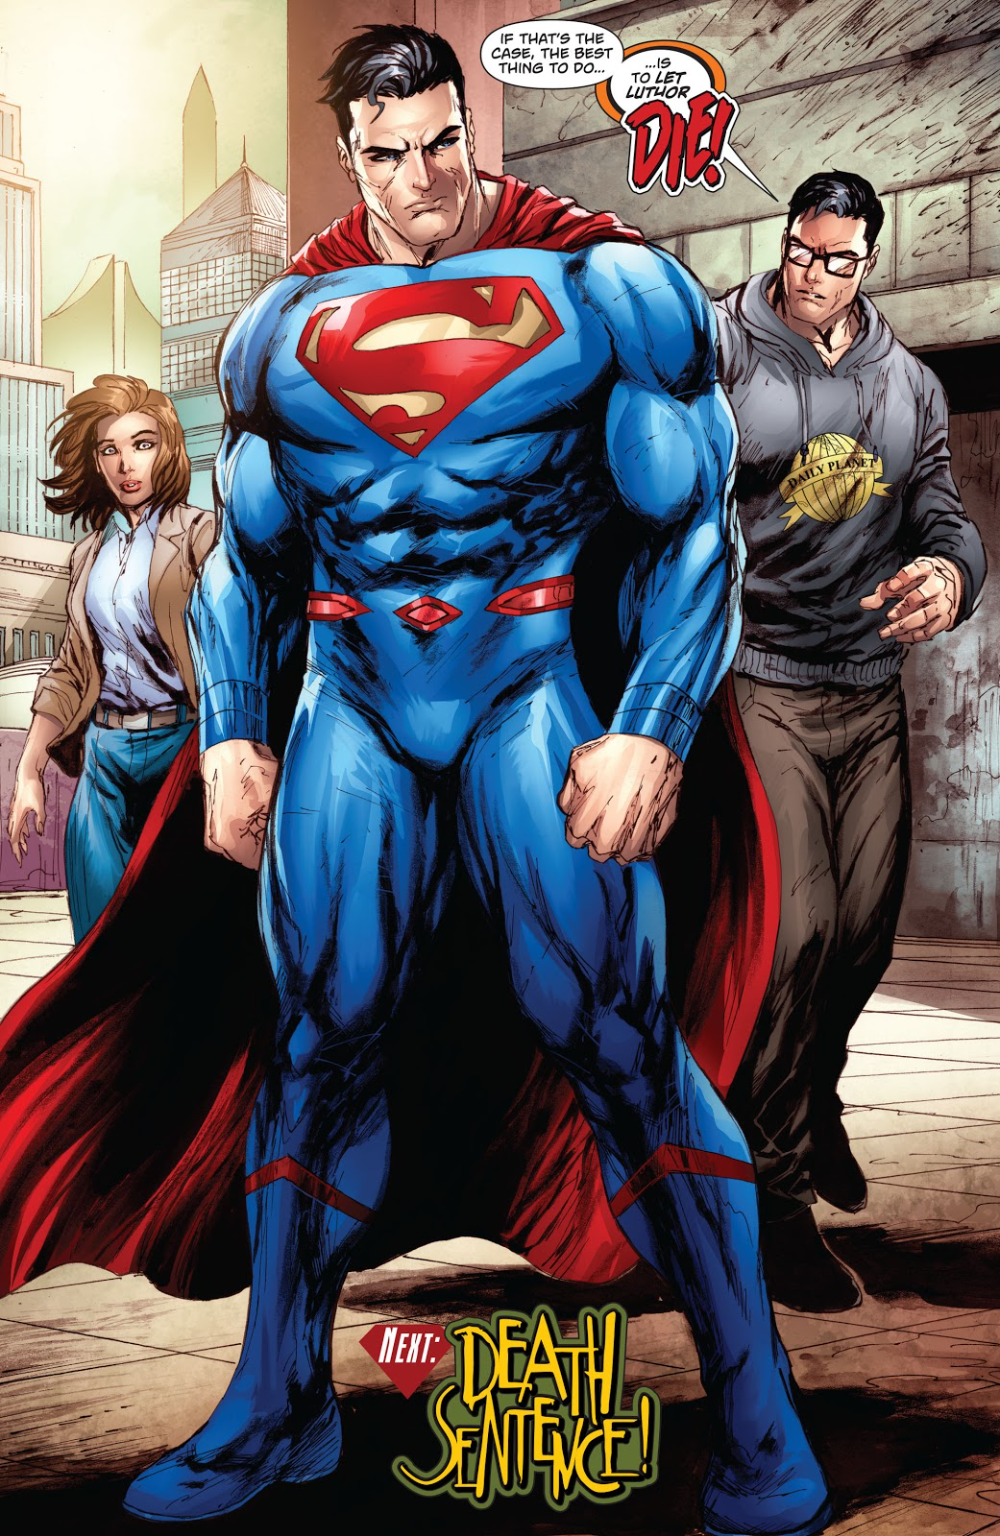 Action Comics 2016 Issue 968 Read Action Comics 2016 Issue 968 Comic Online In High Quality Superman Art Comics Supergirl Superman